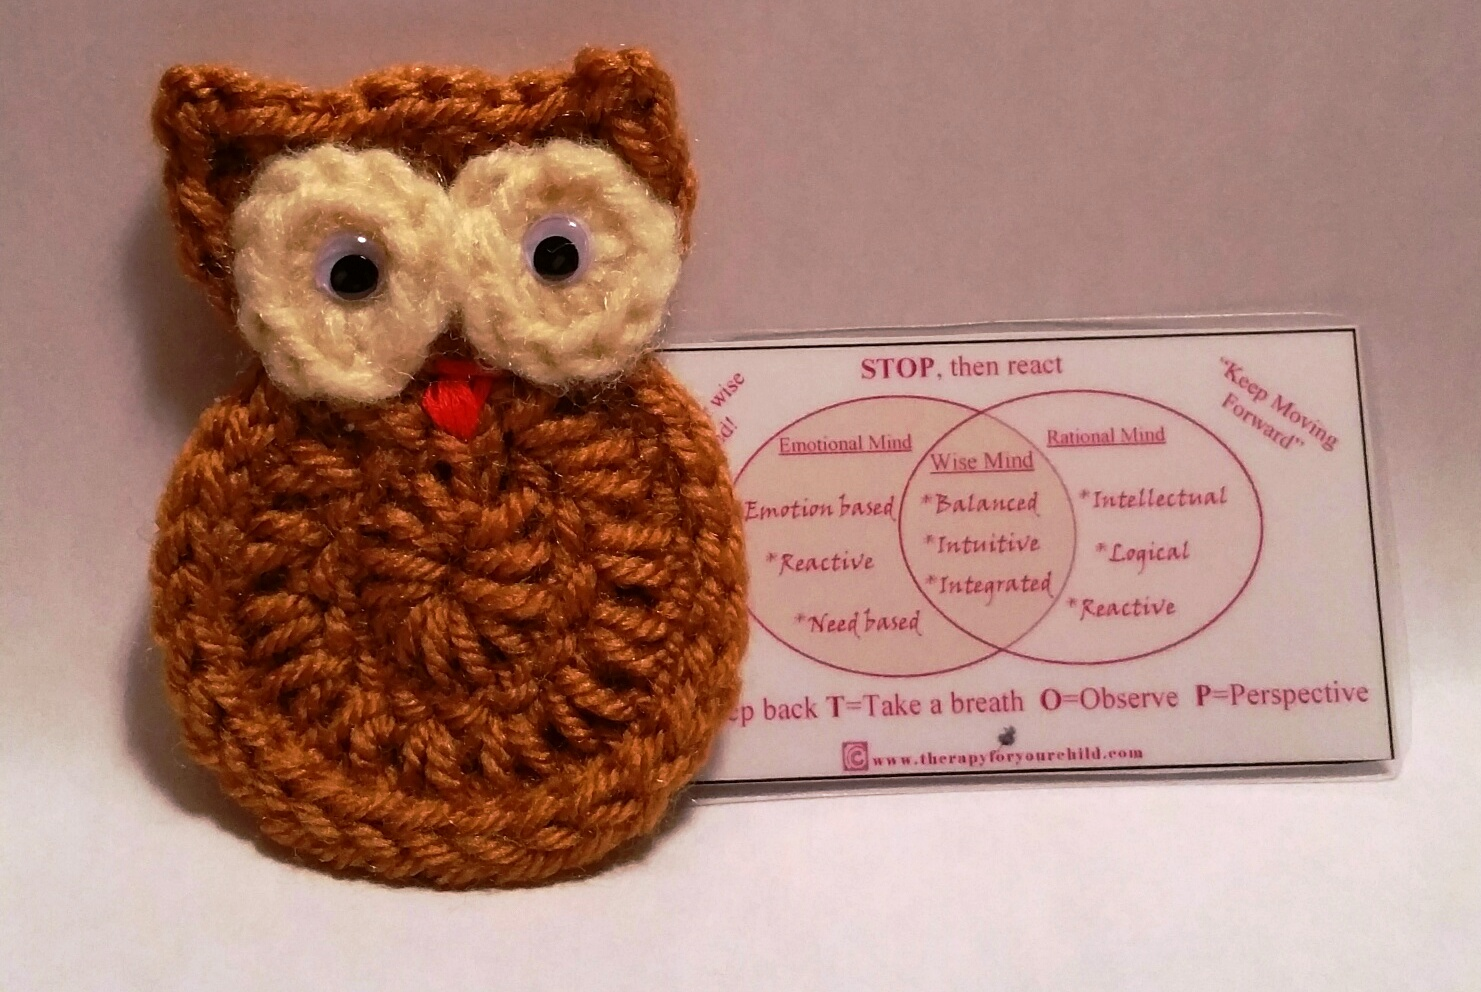 Crochet Owl With Wise Mind Emotional Mind Rational Mind Card